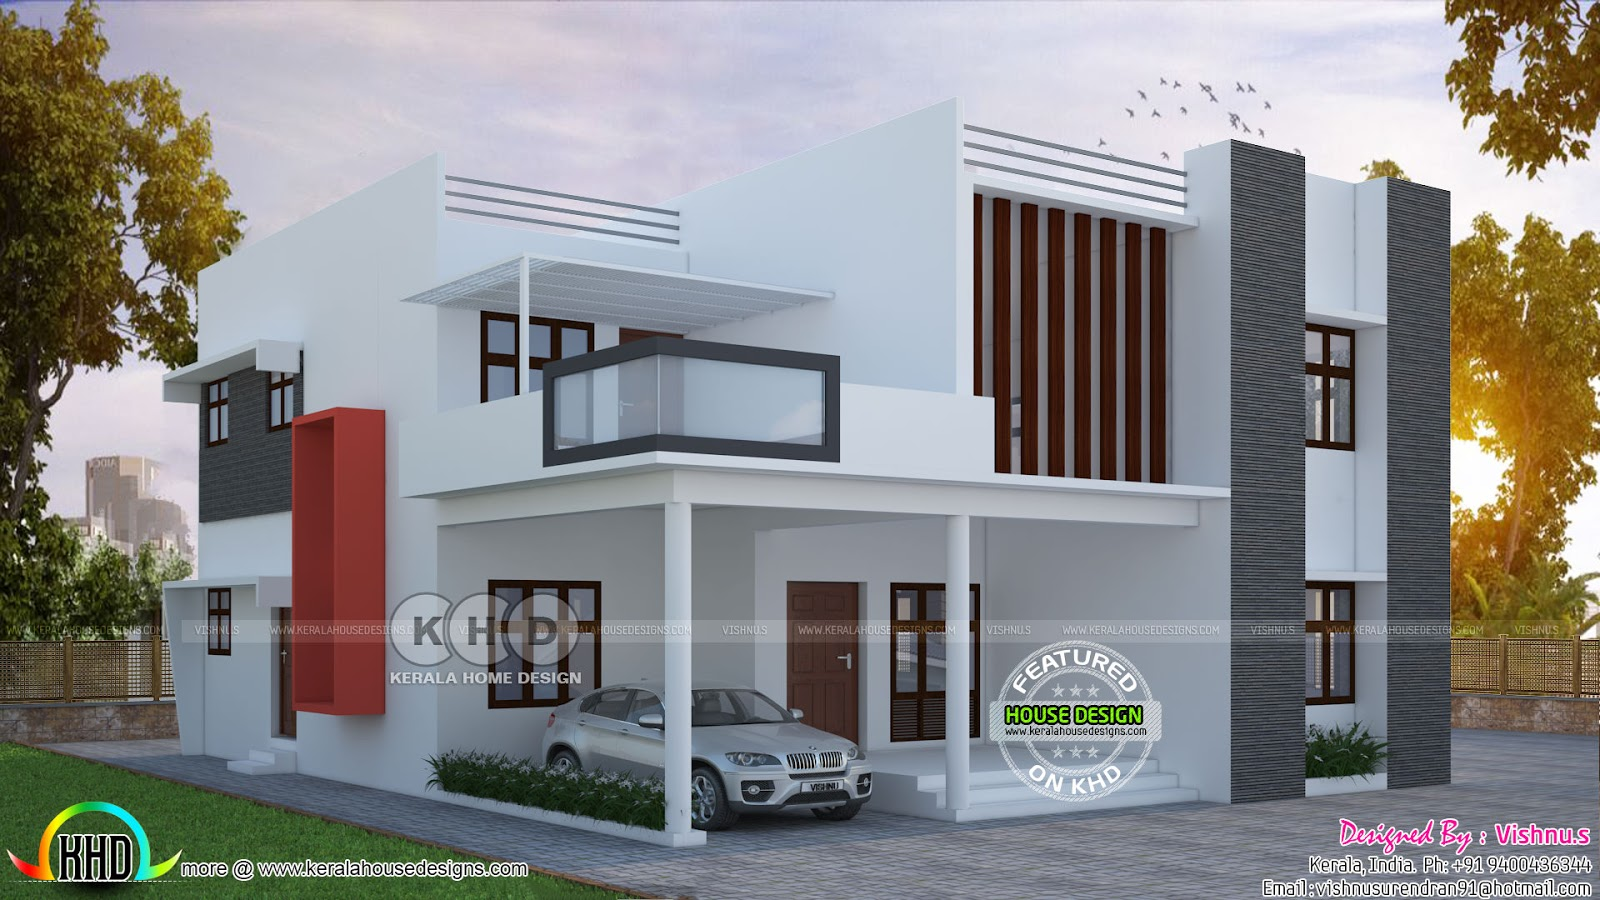 square feet details ground floor 1300 sq ft first floor 800 sq ft total area 2100 sq ft no of bedrooms 4 design style contemporary - First Floor Home Design Hd